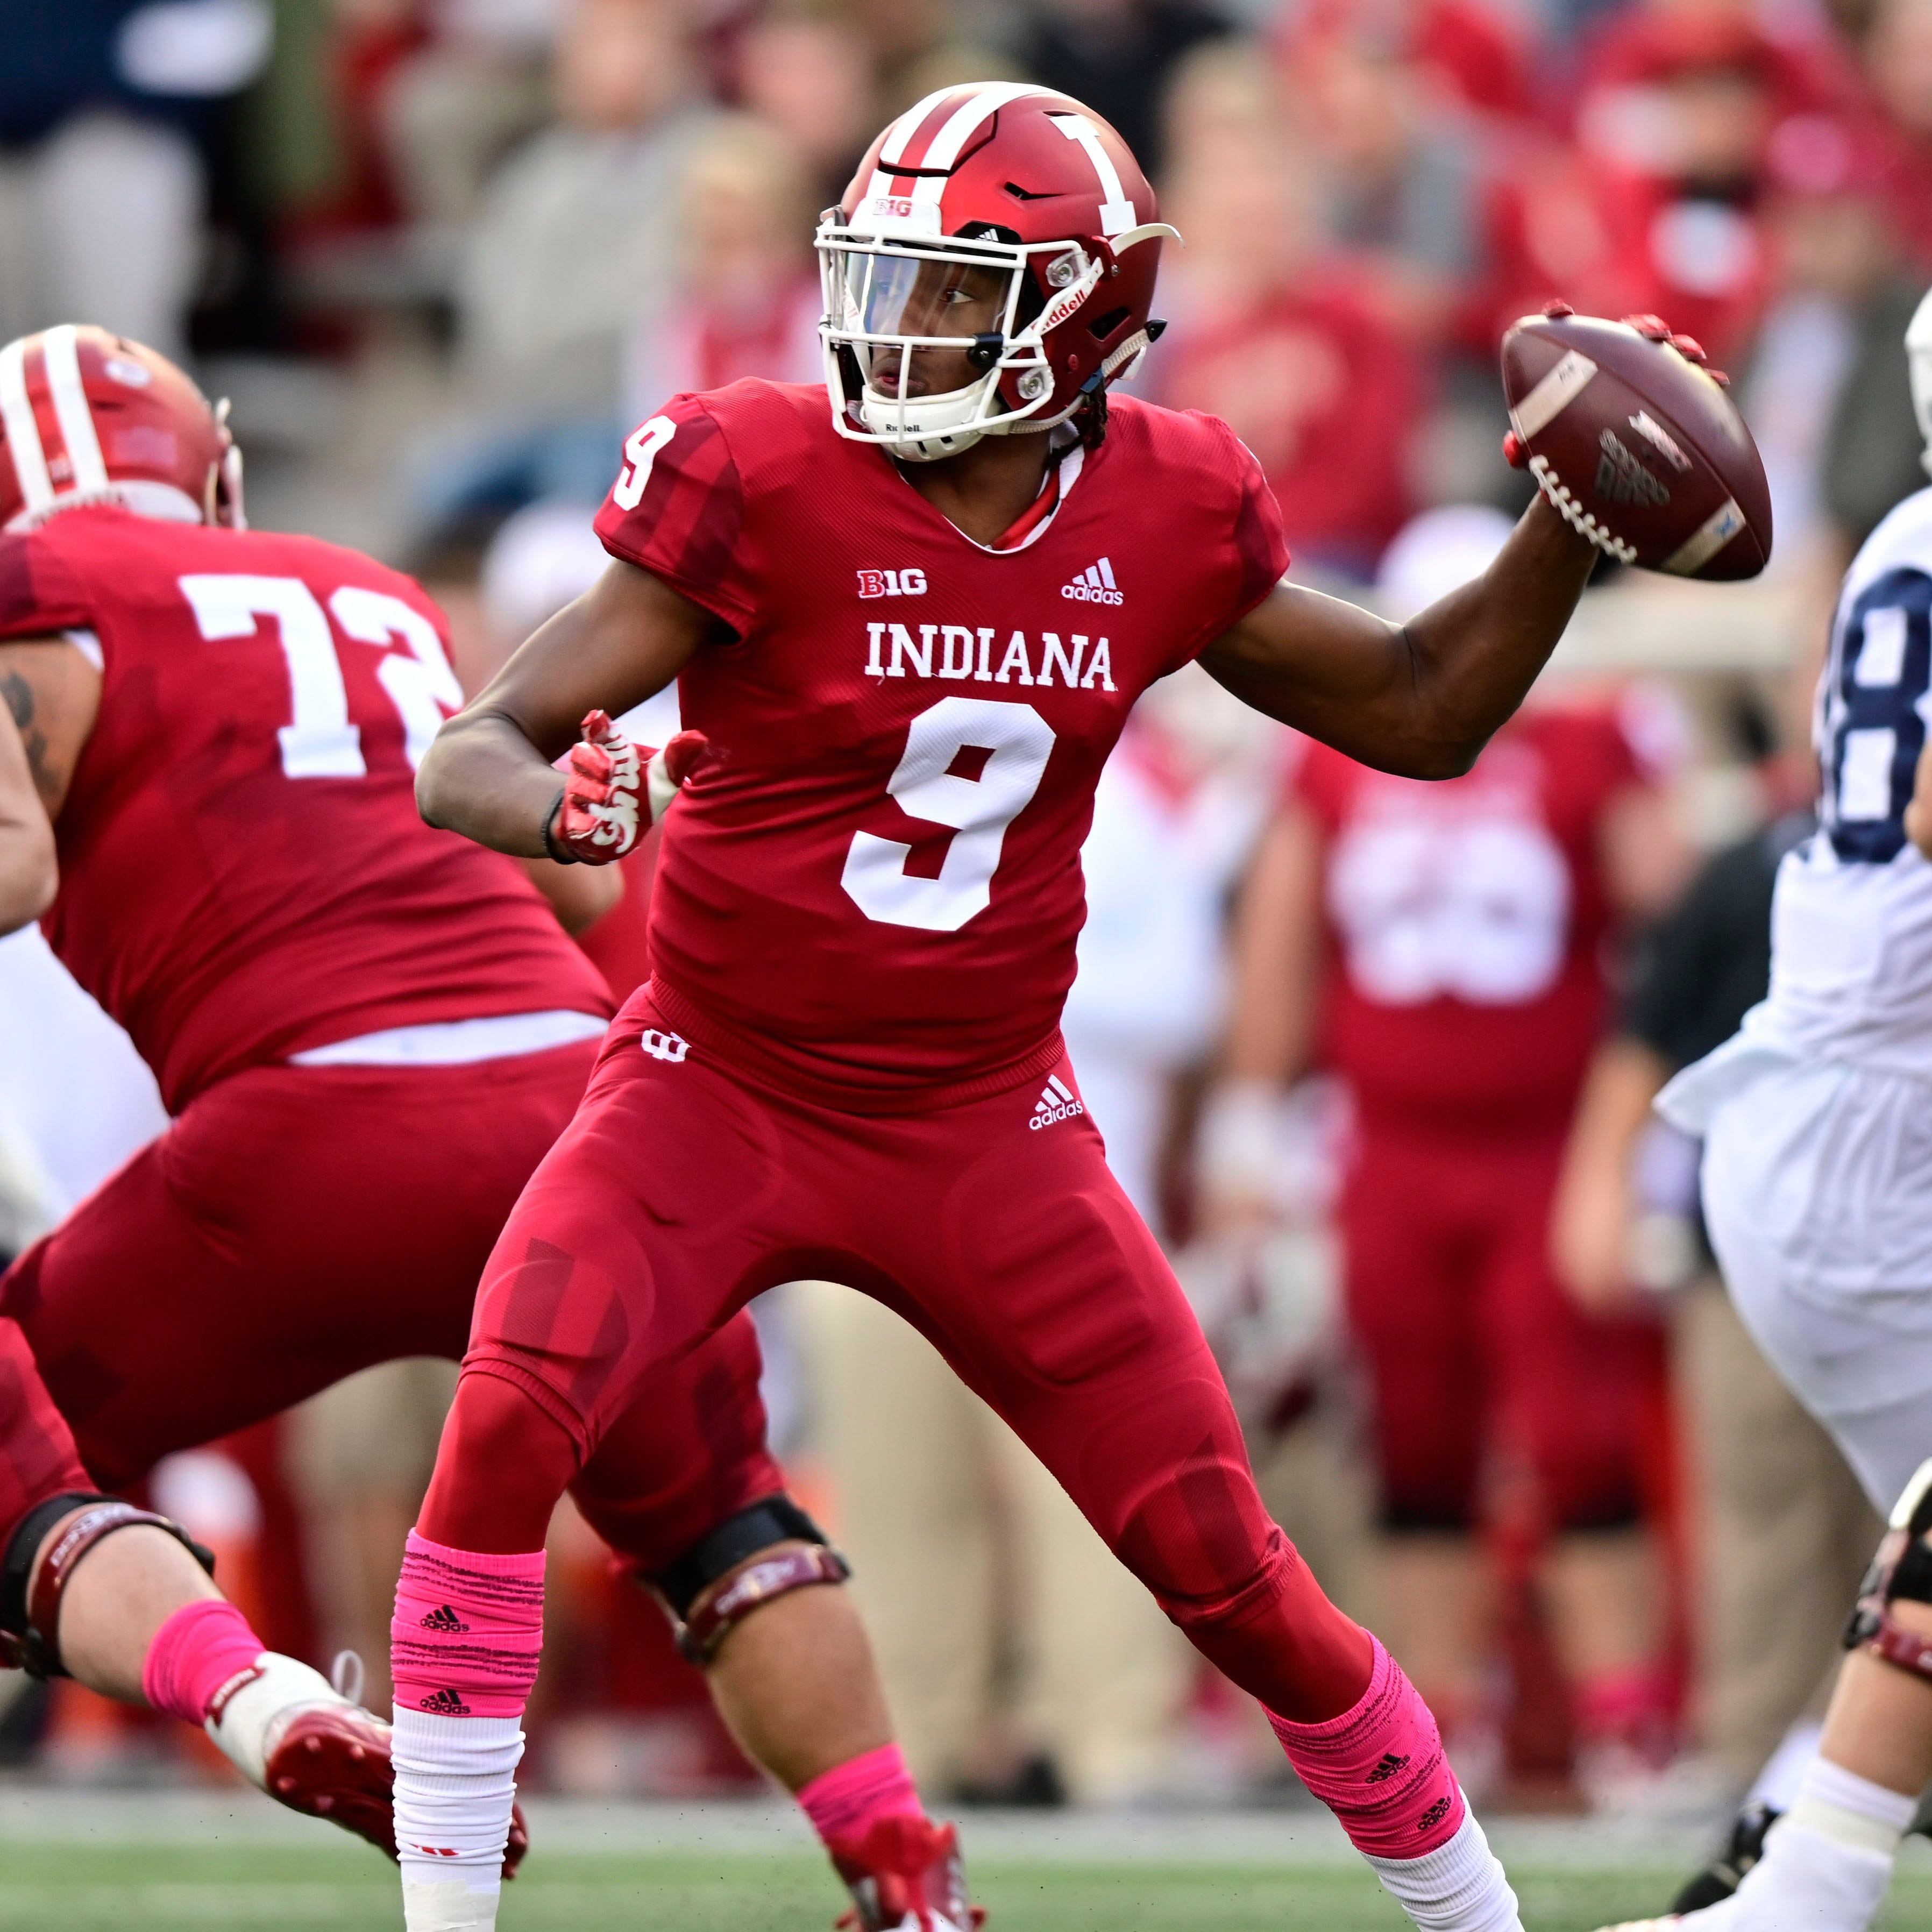 IU freshman QB Michael Penix out for year with torn ACL